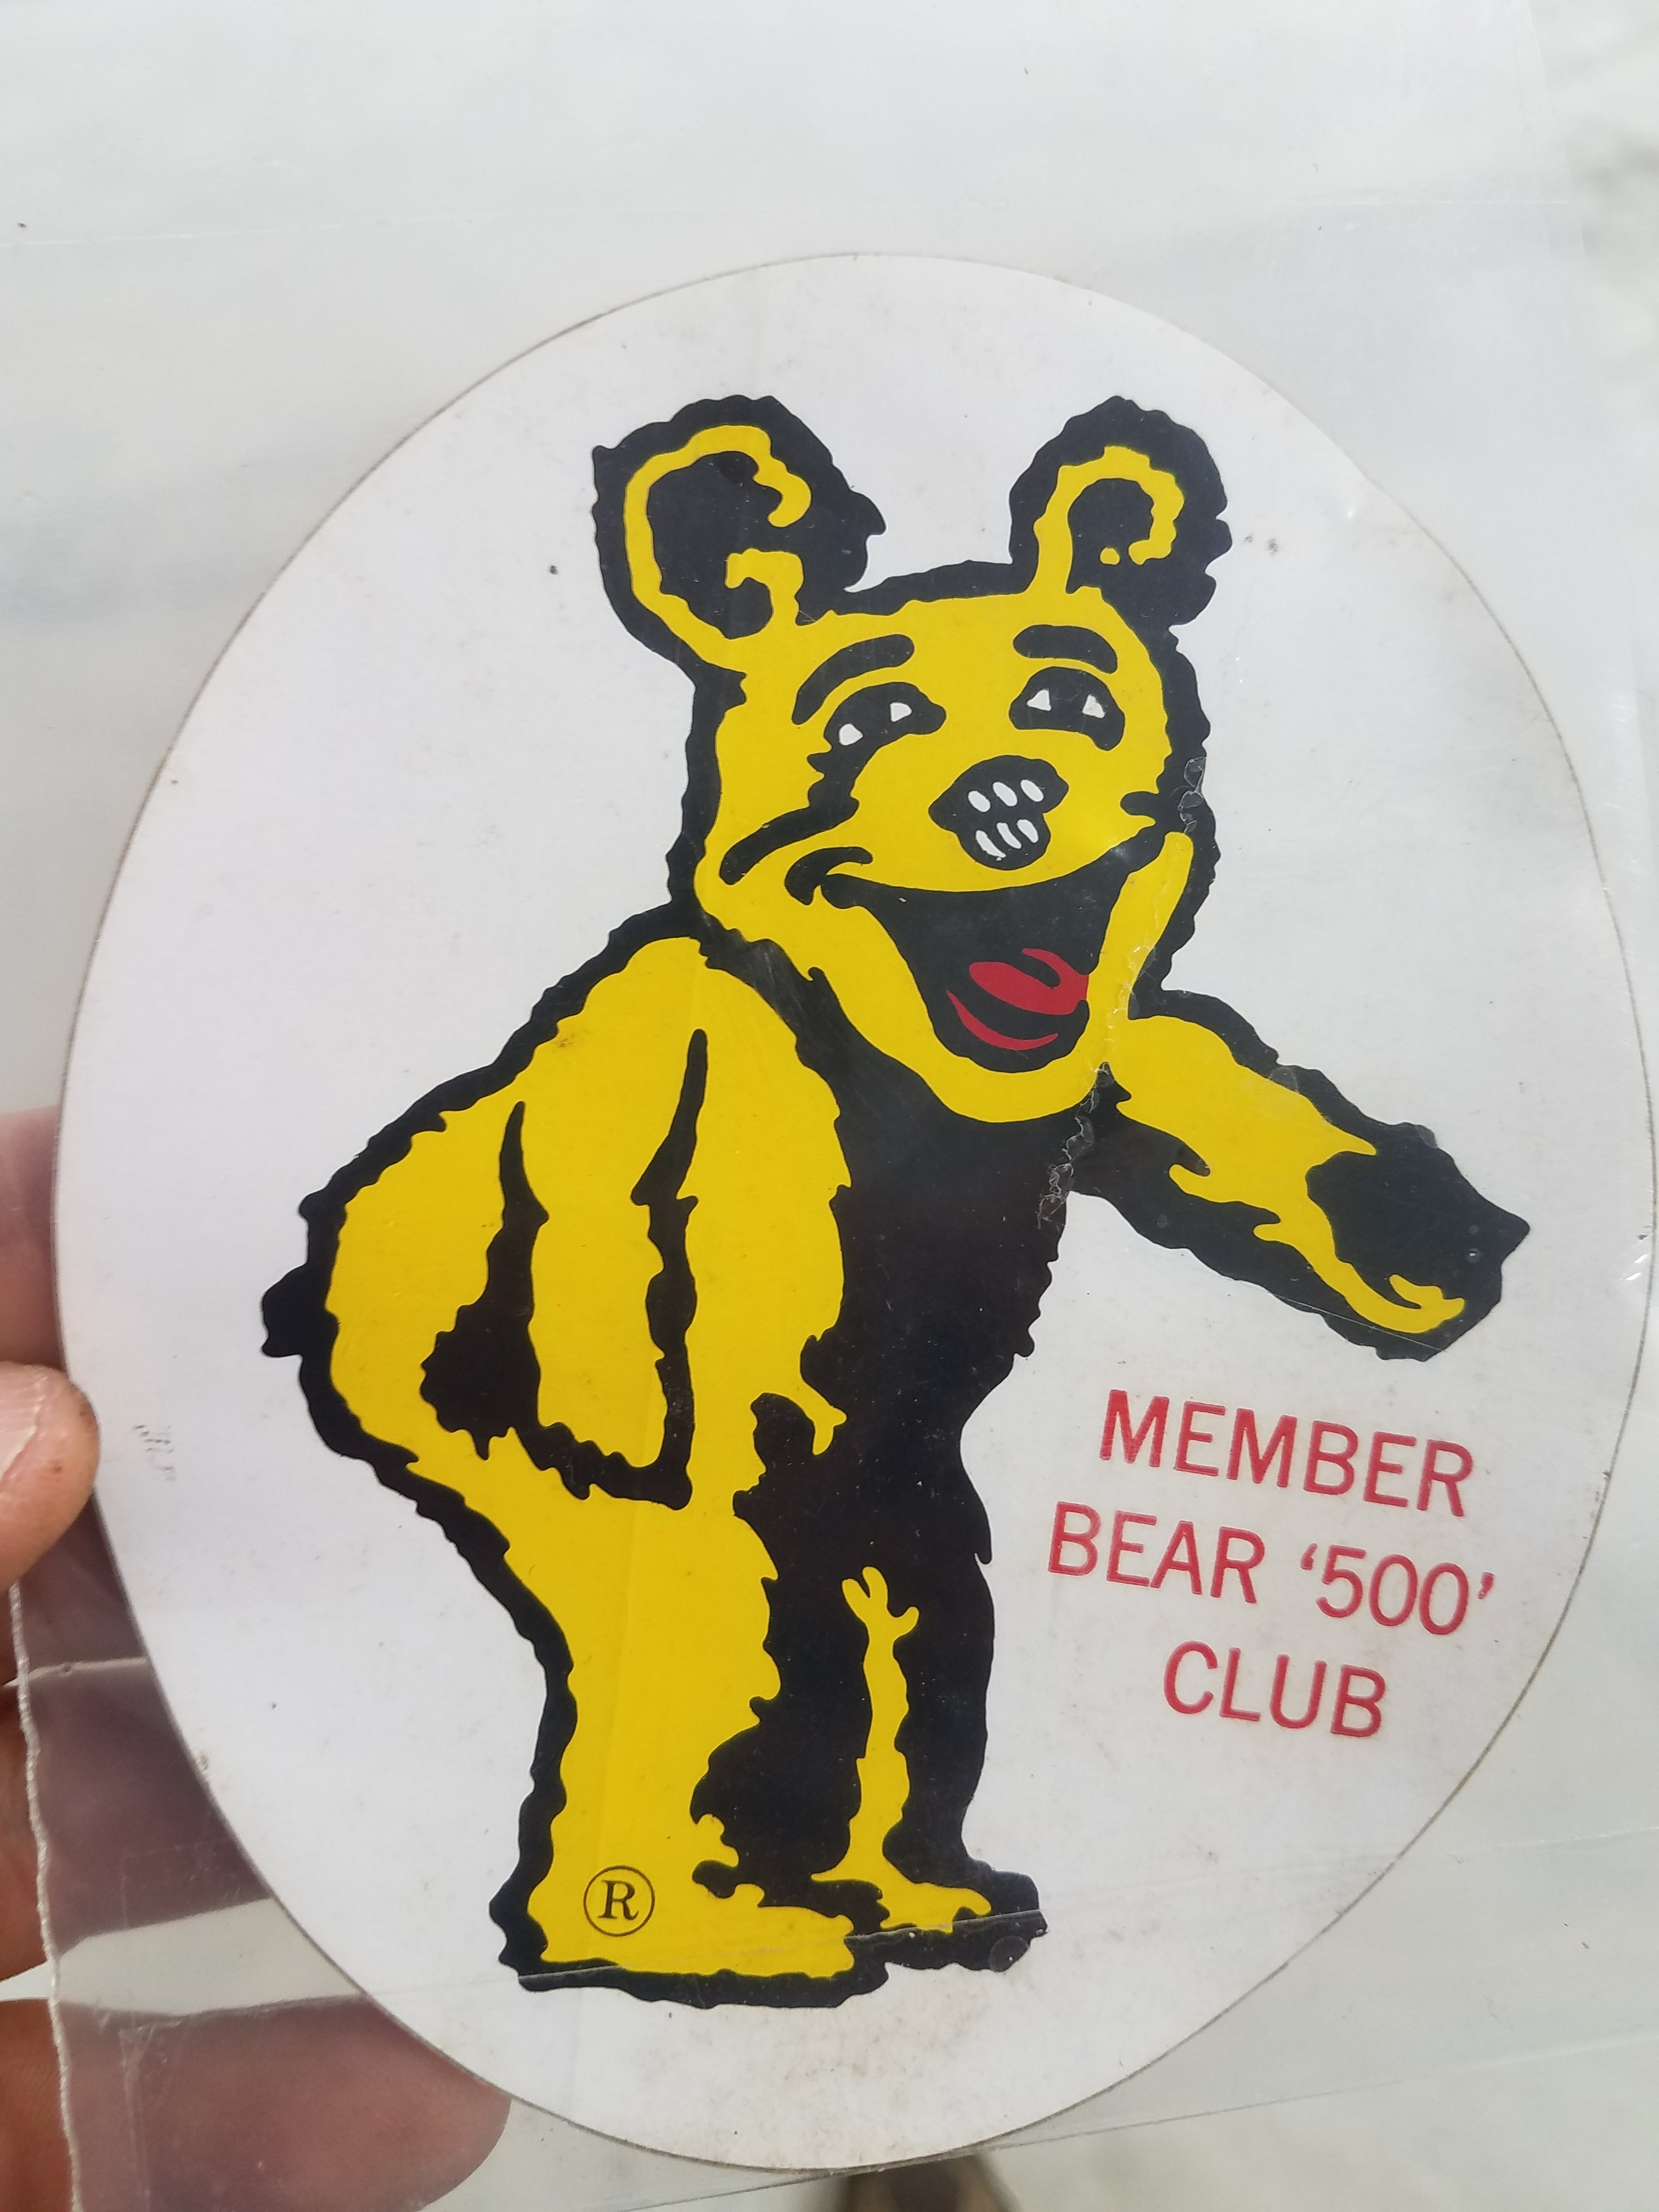 "1967 Indianapolis Speedway Bear Member  ""500' Club Decal"